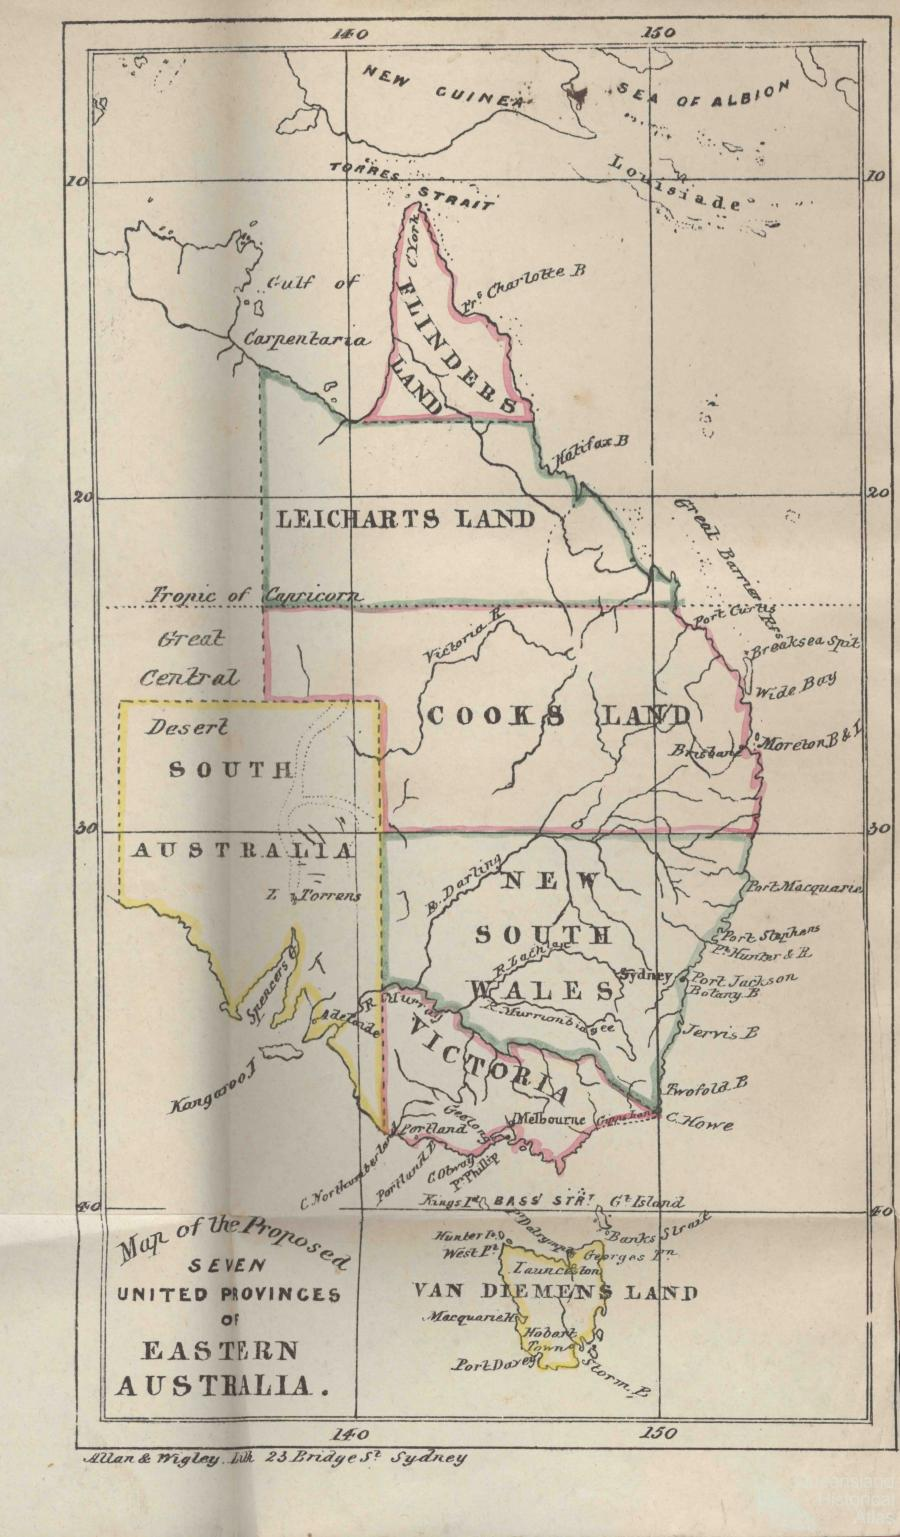 Australia Map Provinces.J D Lang Map Of The Proposed Seven United Provinces Of Eastern